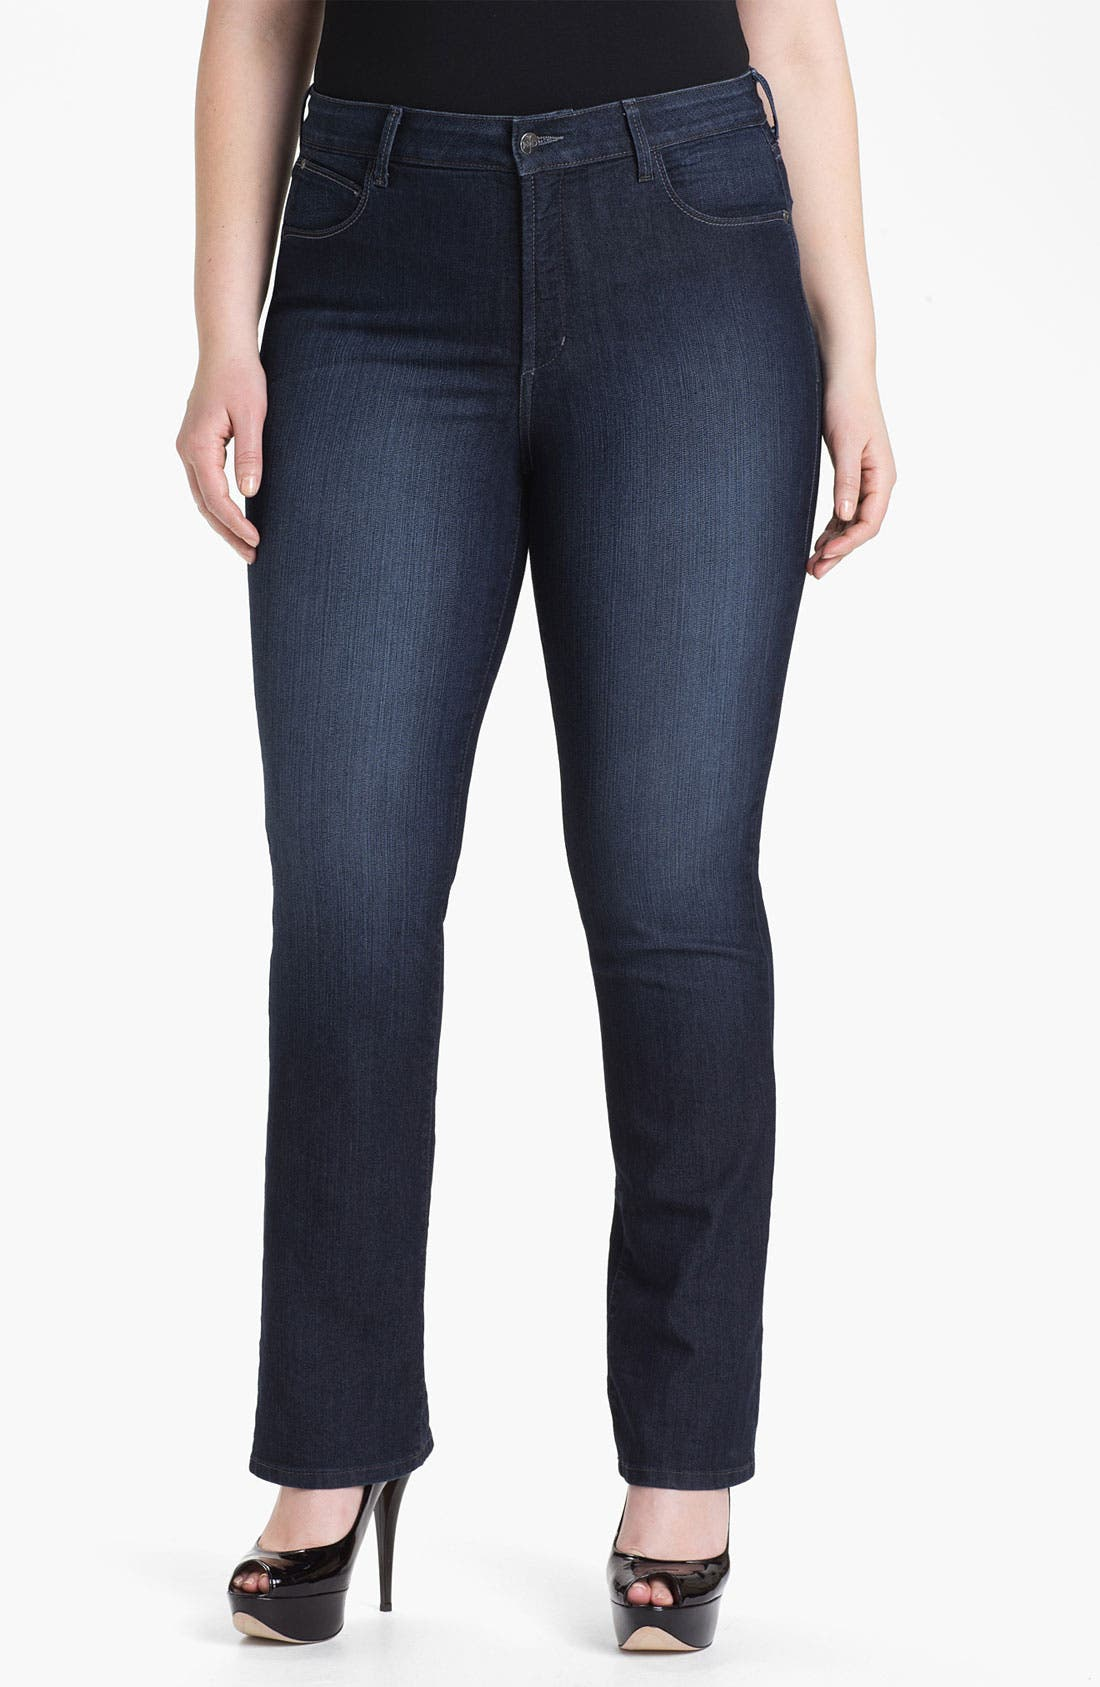 Alternate Image 1 Selected - NYDJ 'Marilyn' Straight Leg Jeans (Plus Size)